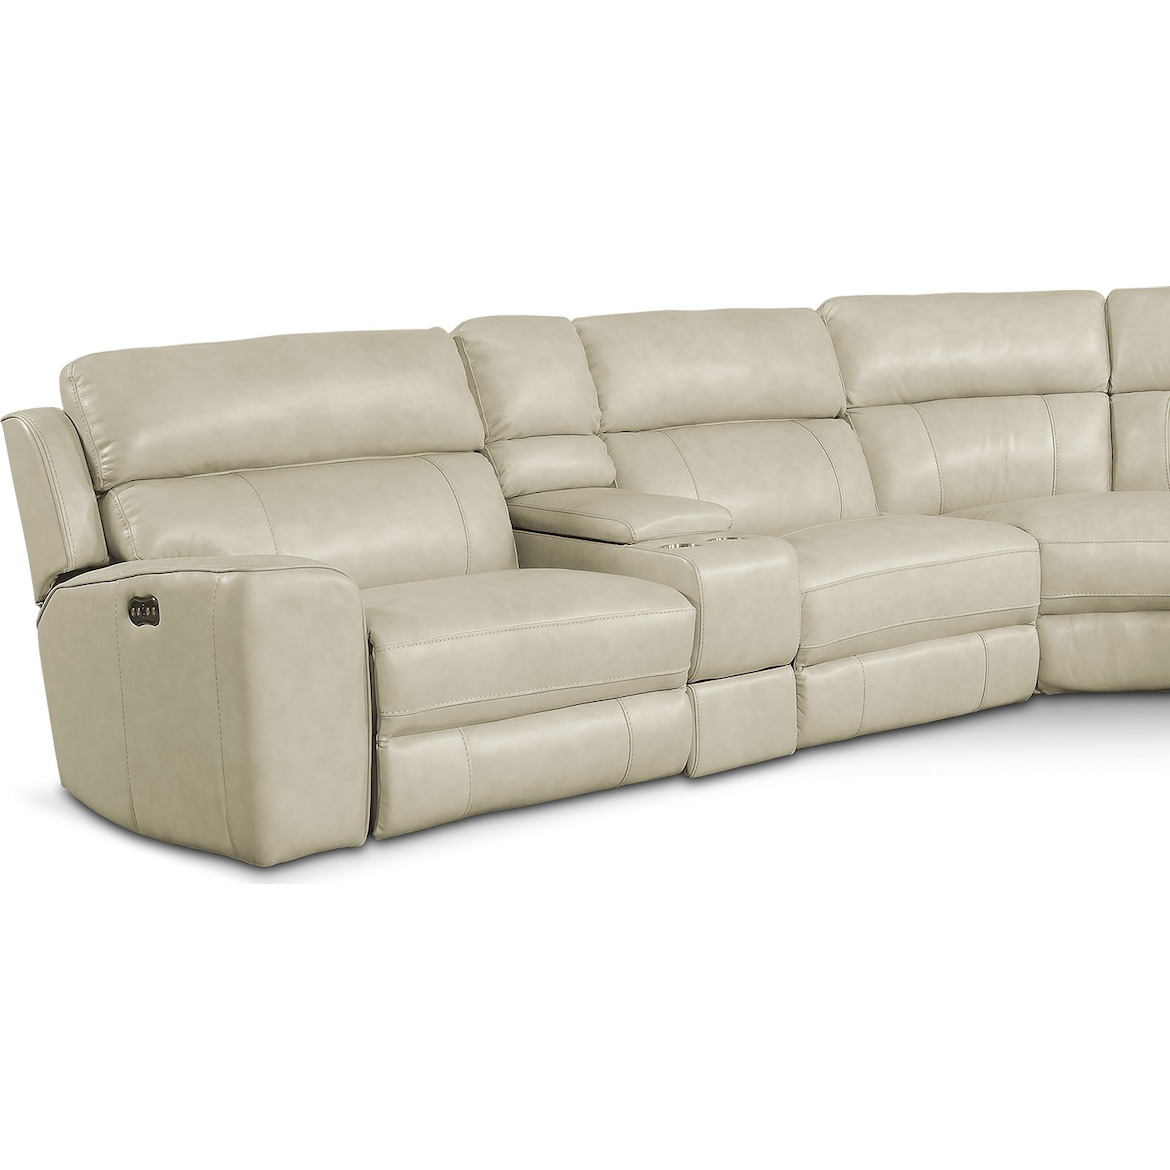 Newport 6-Piece Dual-Power Reclining Sectional with 2 Reclining Seats